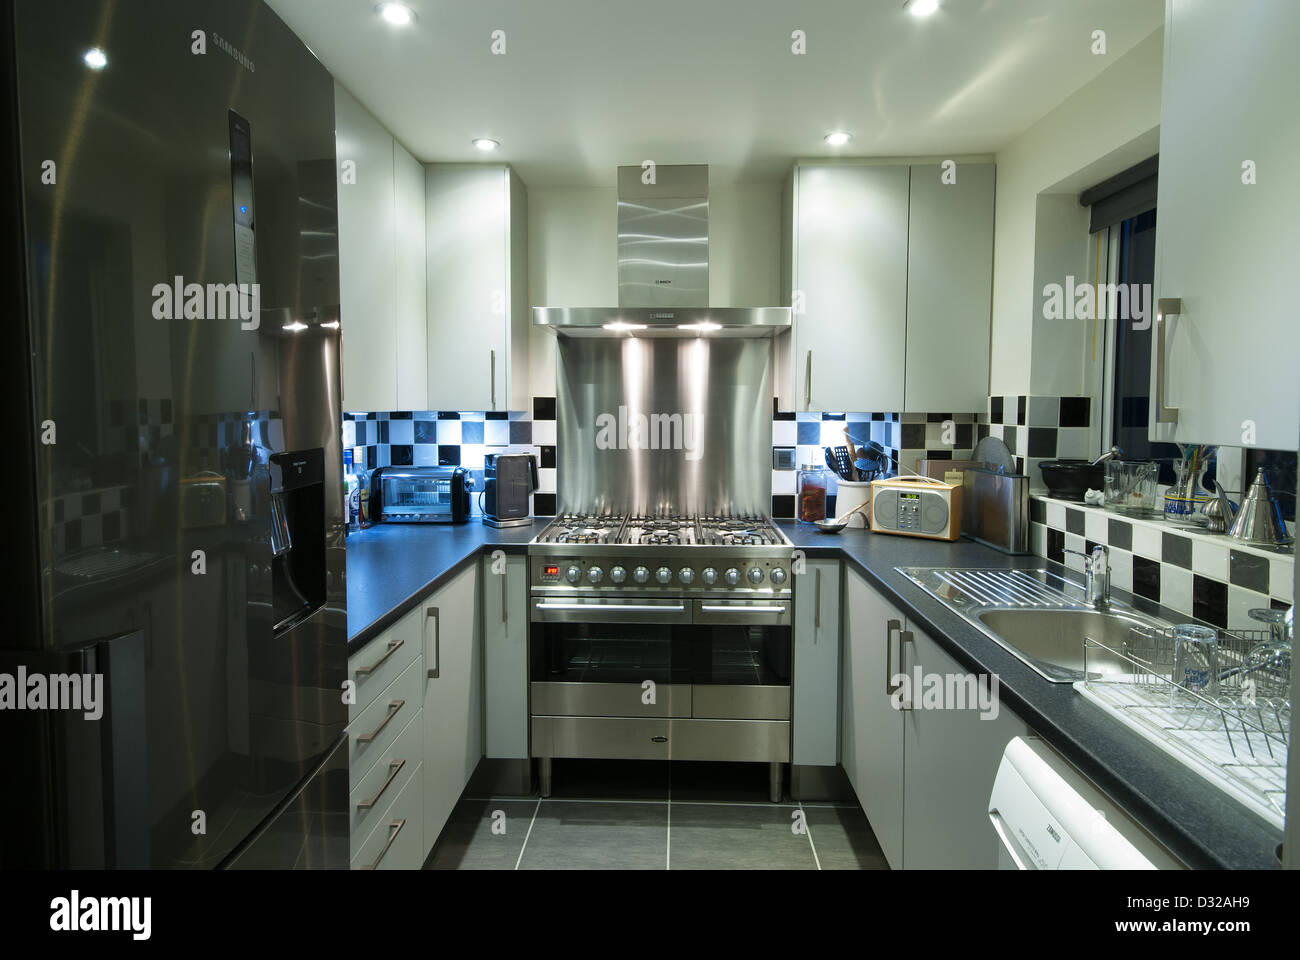 Kitchen Designs With Range Cookers. A Small Modern Domestic Kitchen With A  Stainless Steel Range